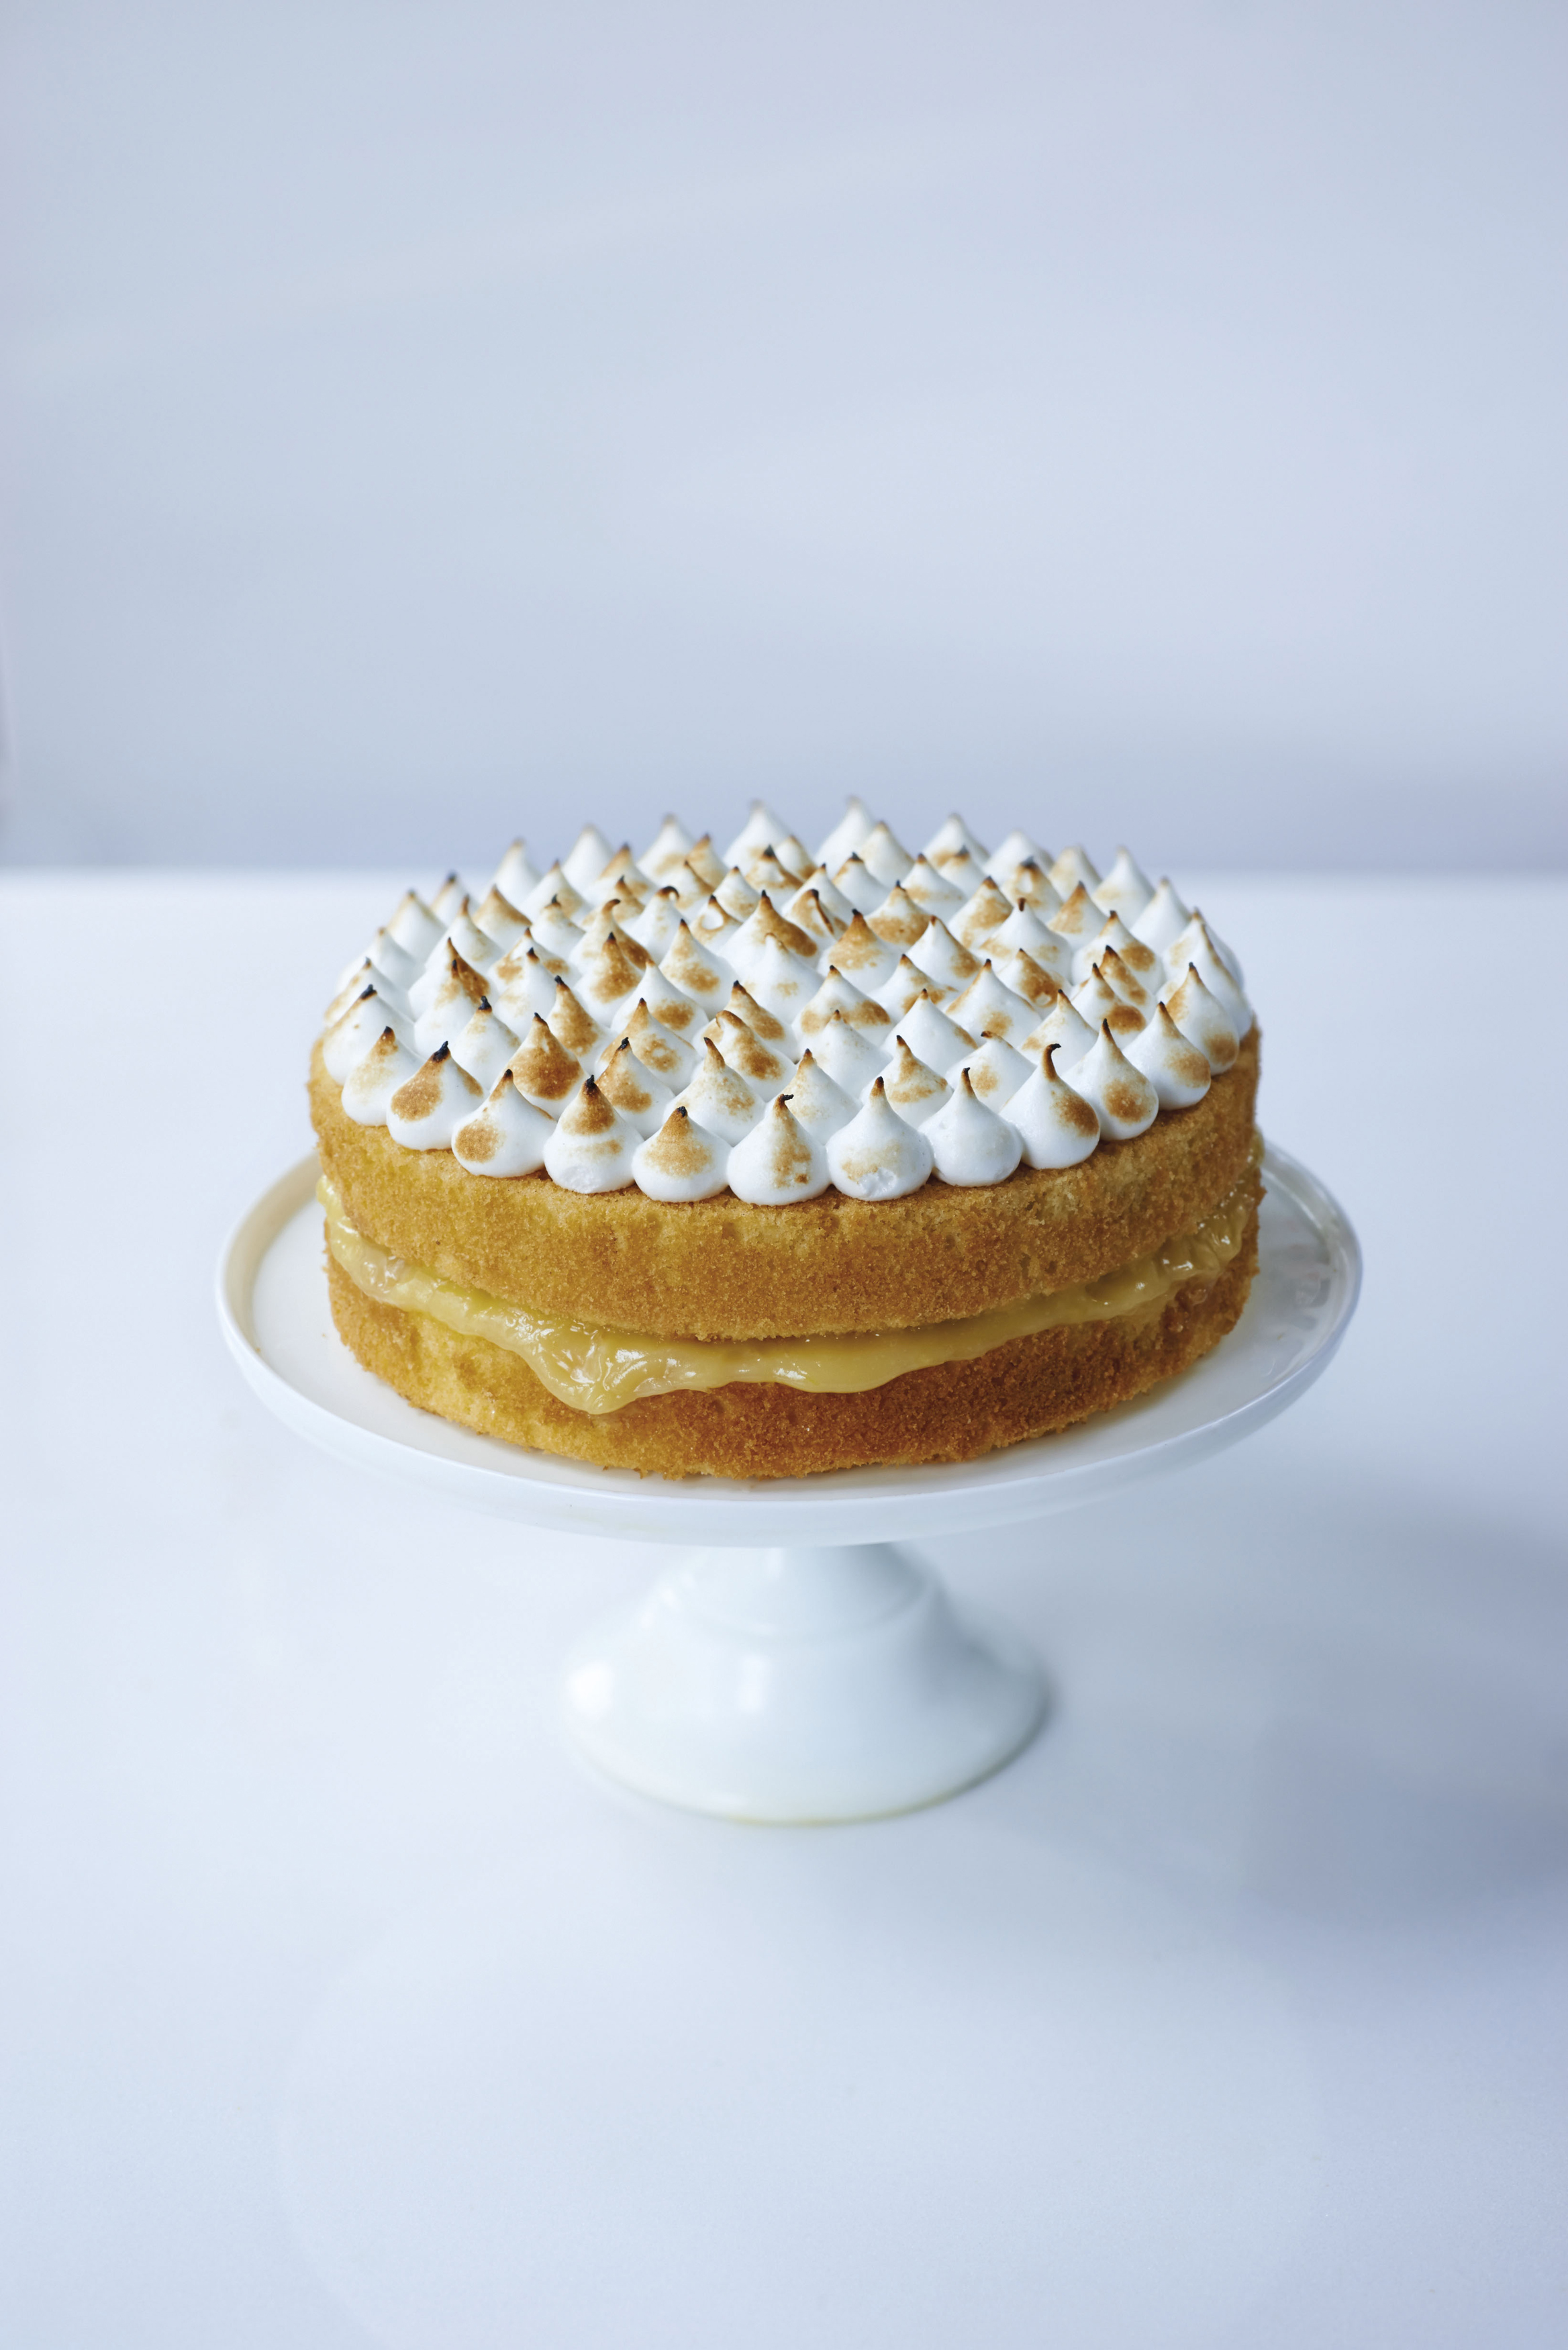 Lemon meringue cake from Leiths How To Cook Cake by Leith's School of Food and Wine (Quadrille/Peter Cassidy/PA)